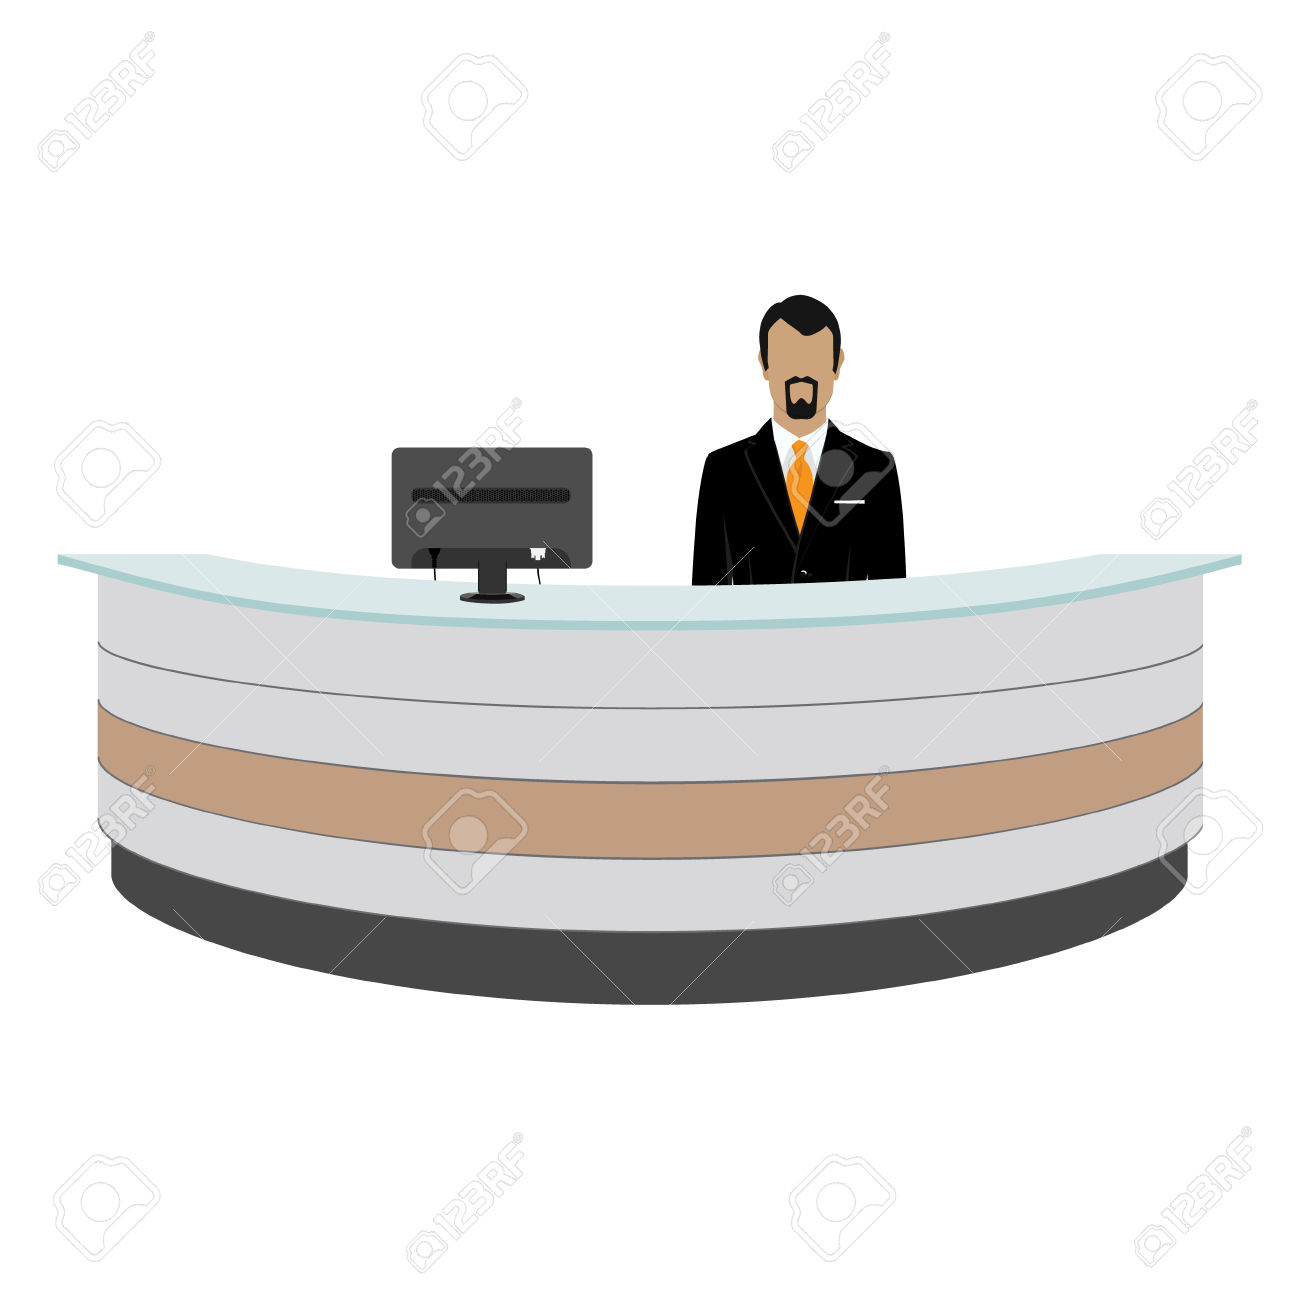 Hotel reception clipart graphic free stock Hotel reception desk » Clipart Station graphic free stock